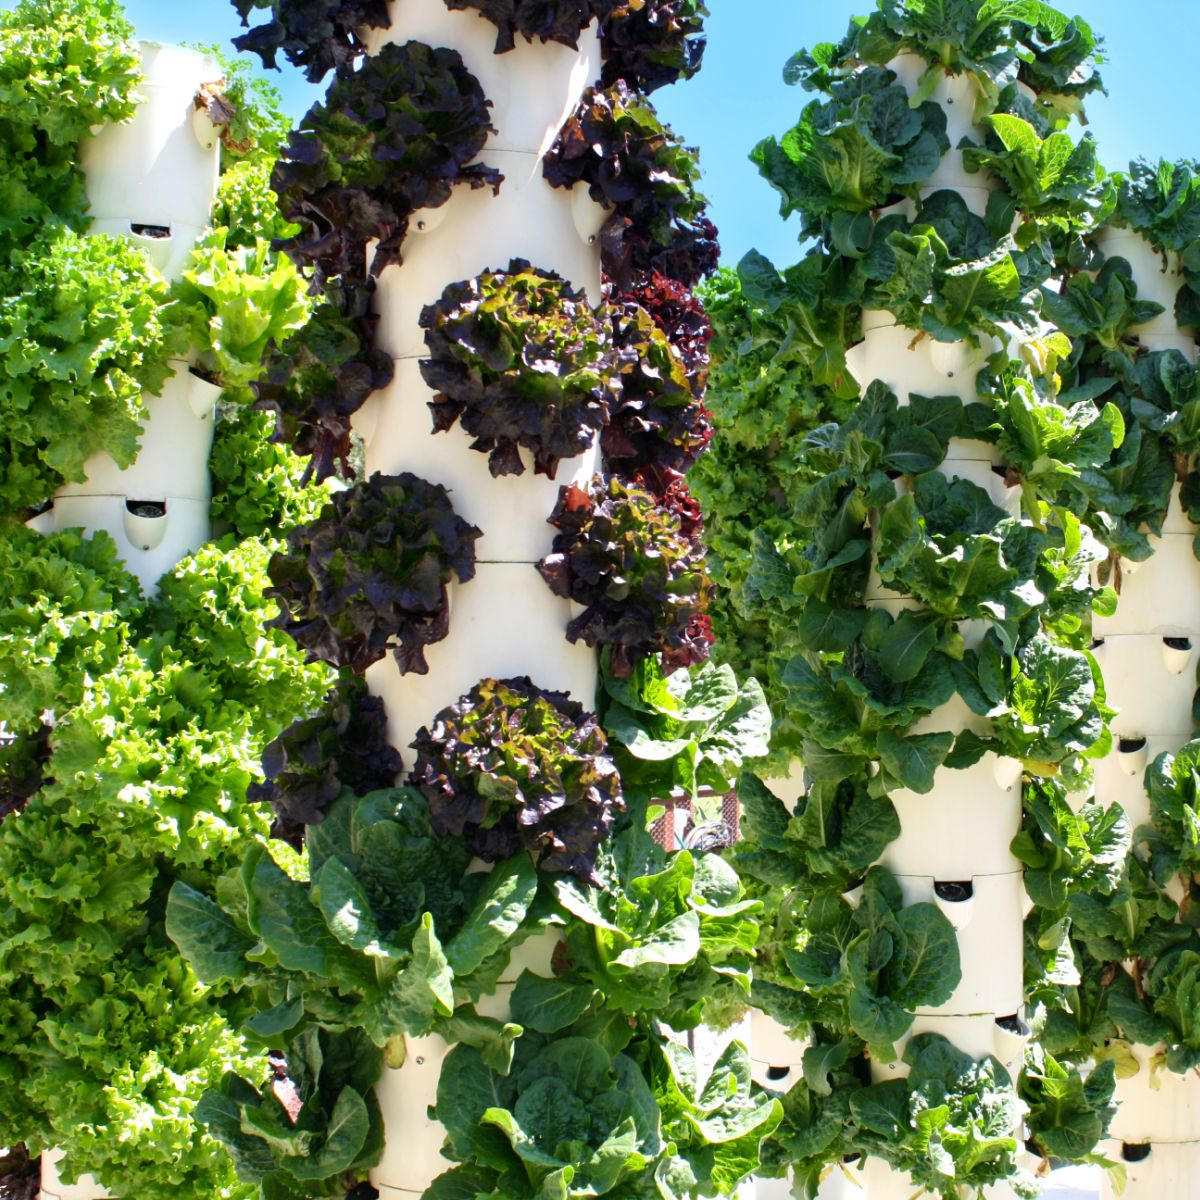 Vertical aeroponic systems are versatile, scalable, suitable for crowded, city apartments or suburban settings. (Jeff Perkins)